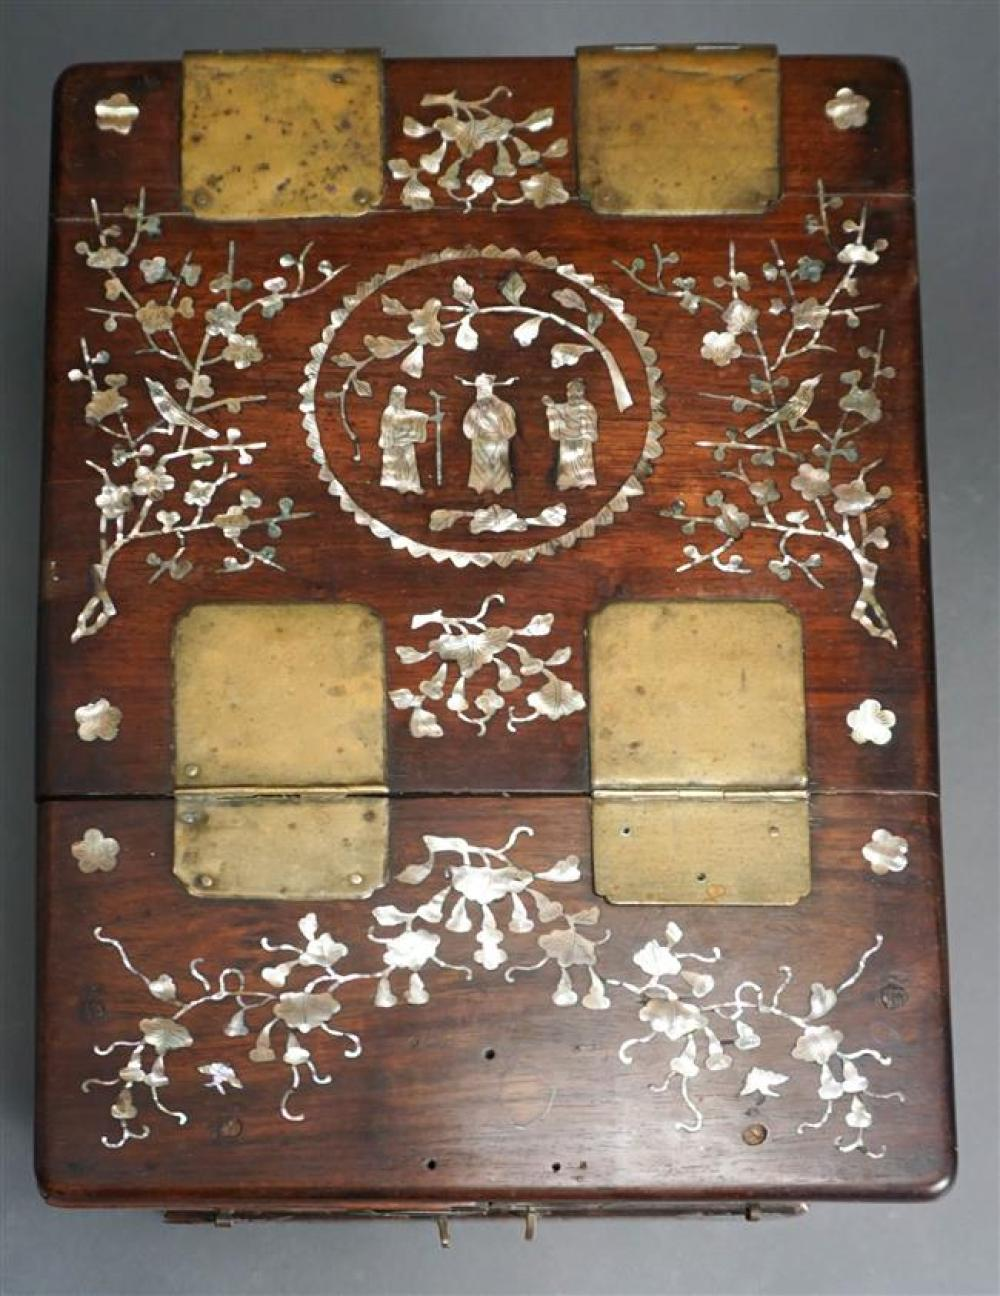 Chinese Mother of Pearl Inlaid Rosewood Jewelry Box; 8.5 x 11.25 x 15.75 HWD Inches